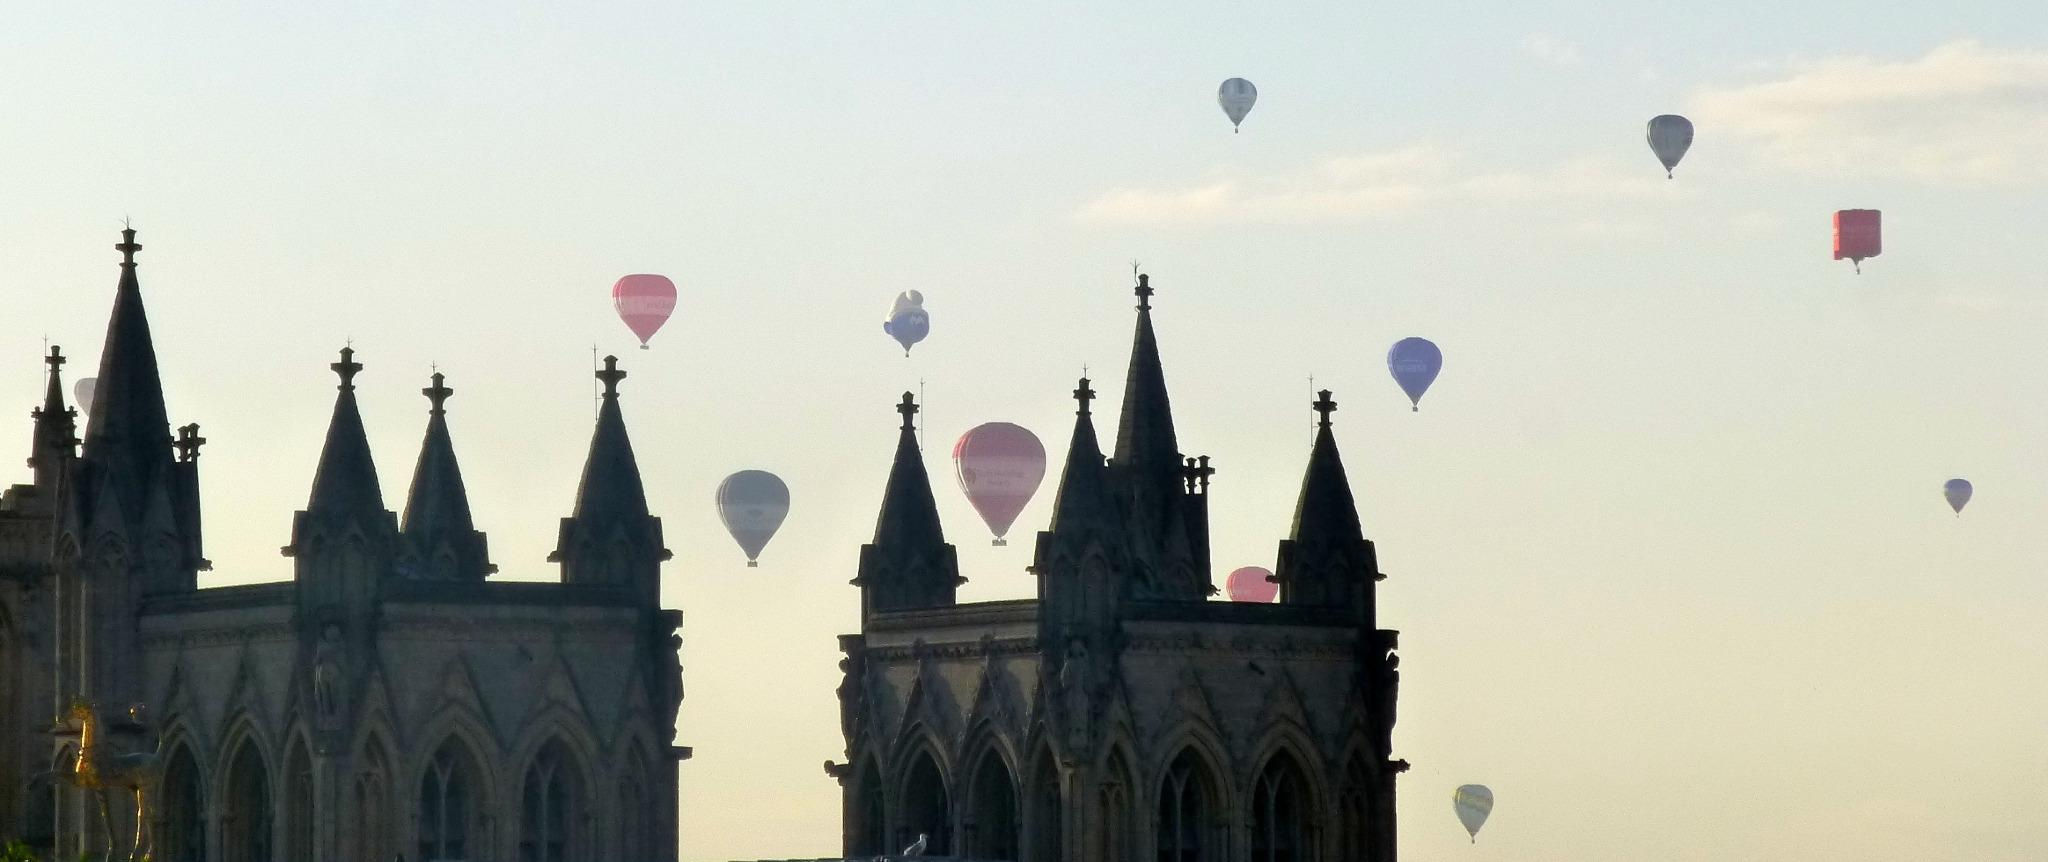 """@GeorgeFergusonx here they are @bristolballoon over other Cathedral, from Brandon Hill, #Bristol at its best! http://t.co/0DL7zLtcvx"" wow x"